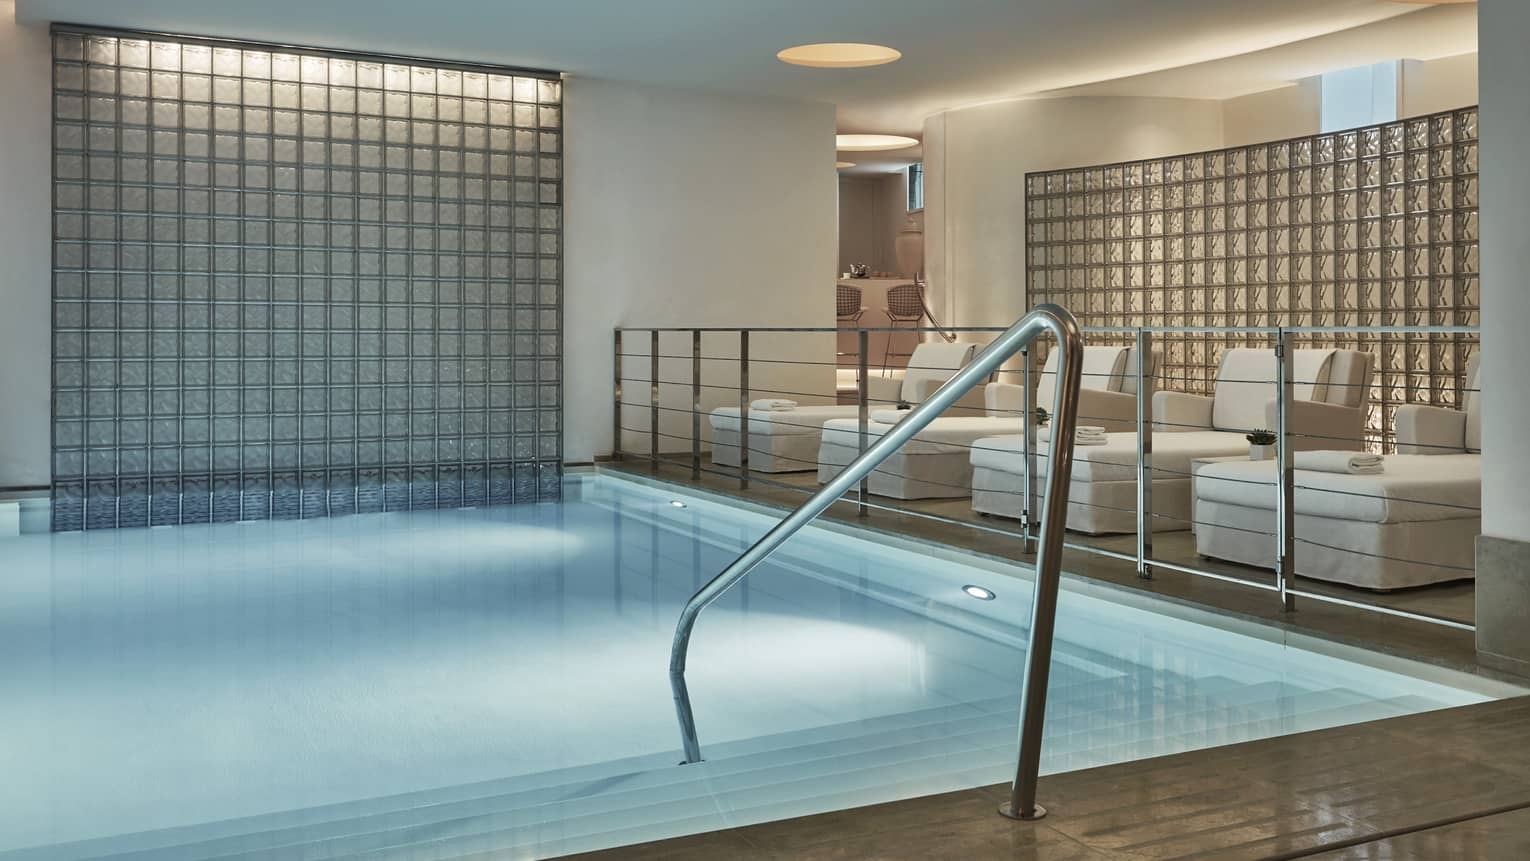 Railing into indoor spa pool under platform with white lounge chairs